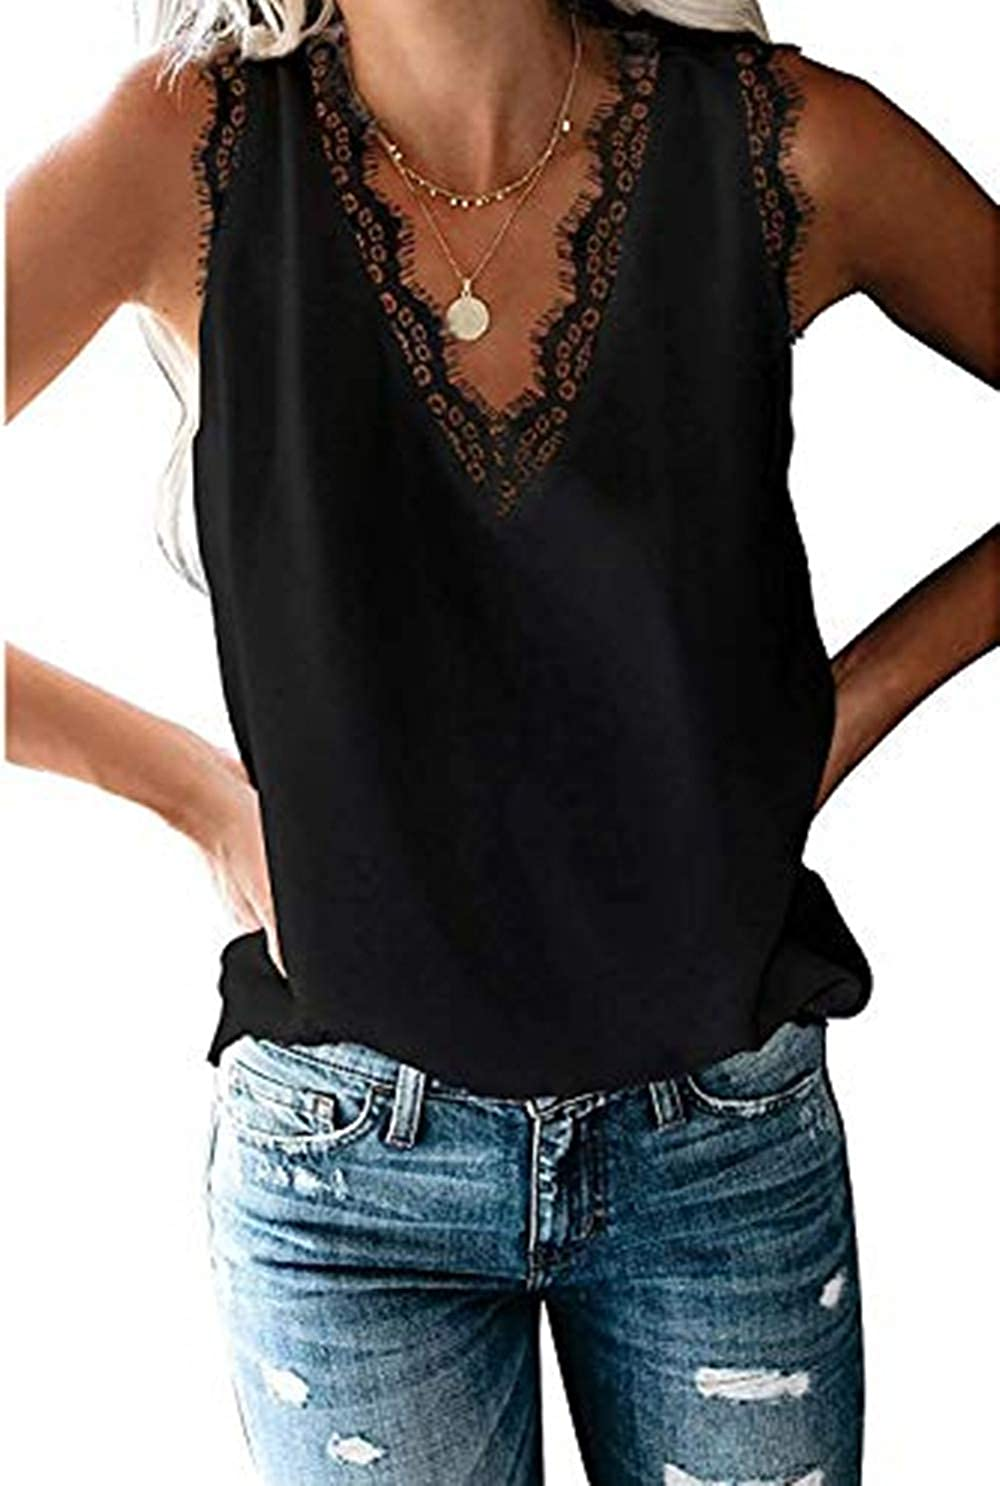 HARHAY Women's V Neck LaceTrim Casual Tank Tops Sleeveless Blouses Shirts at  Women's Clothing store